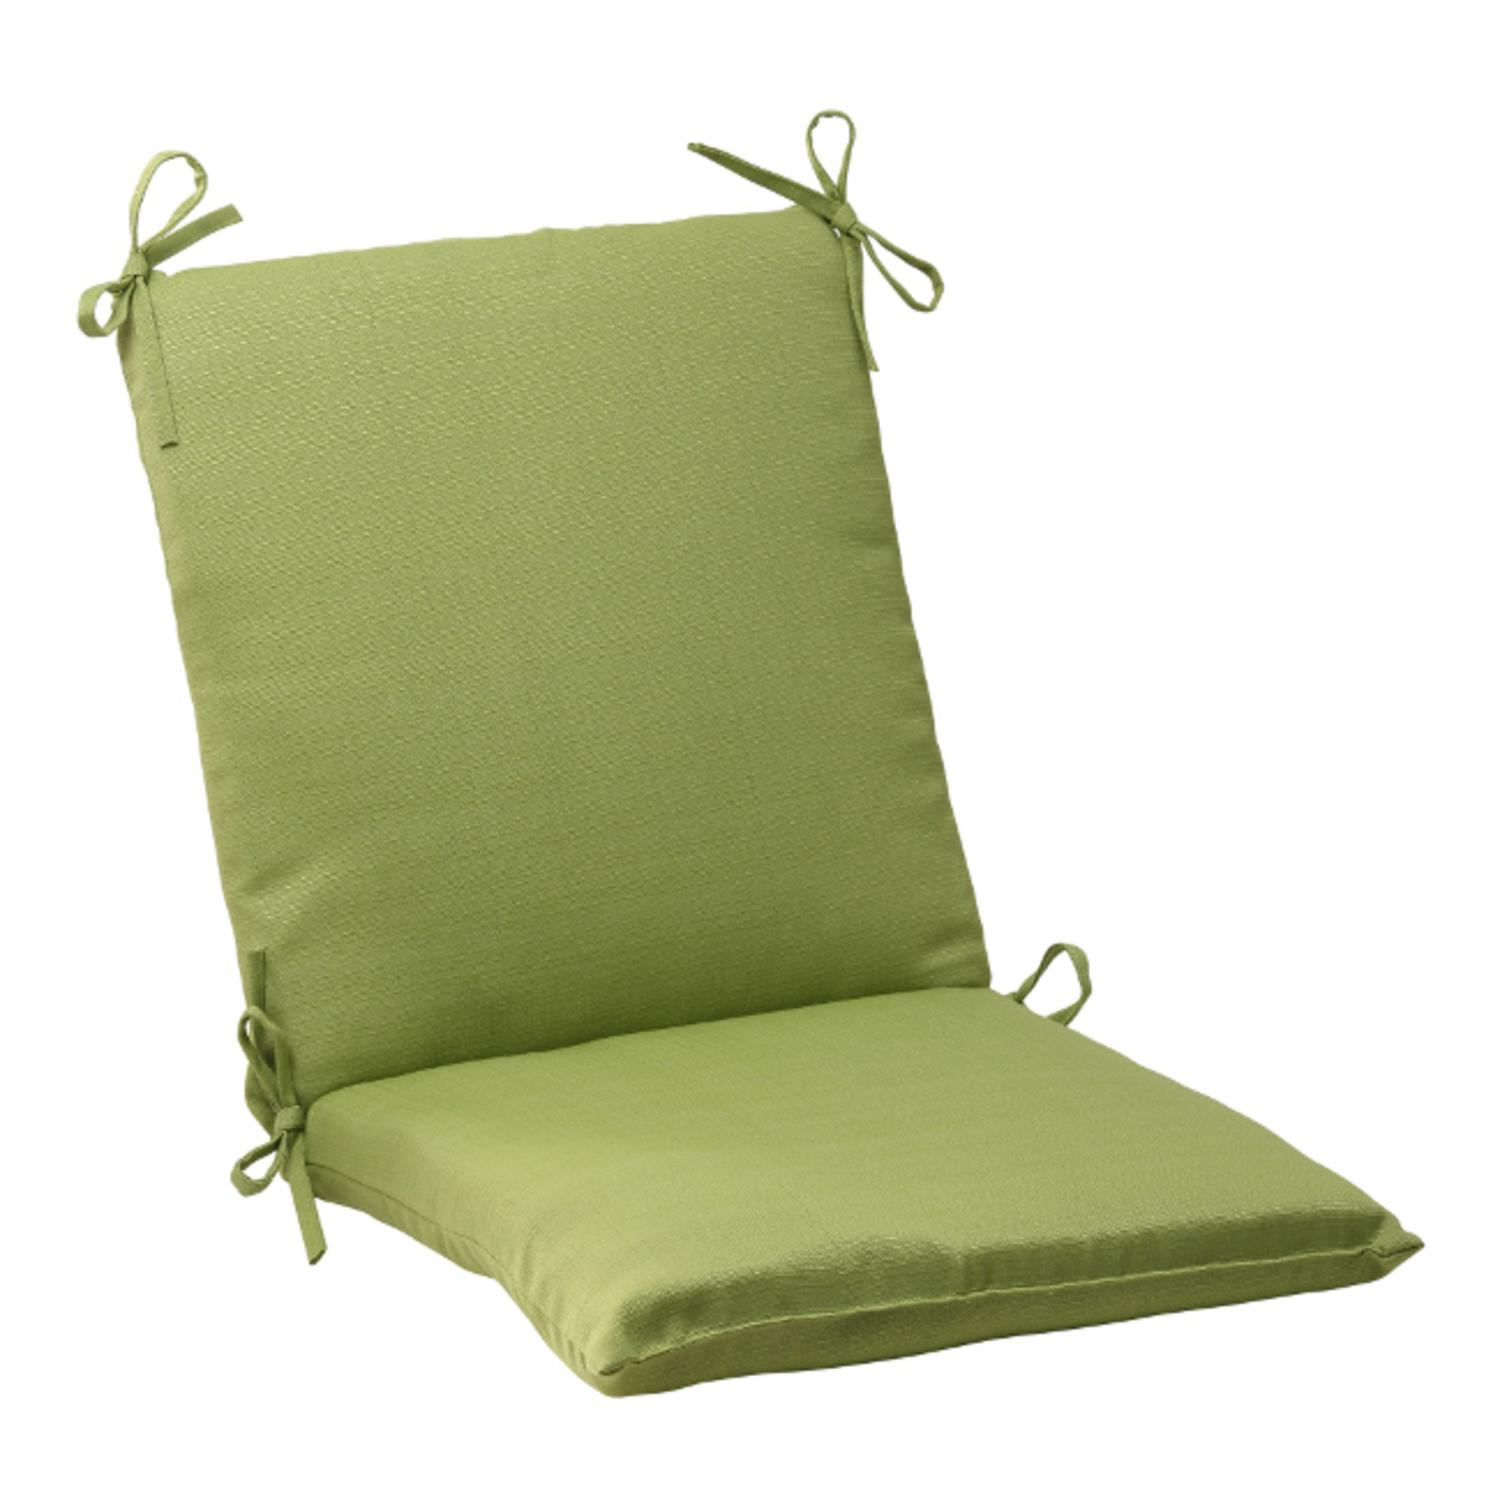 """36.5"""" Solid Olive Green Outdoor Patio Square Wicker Cushion"""